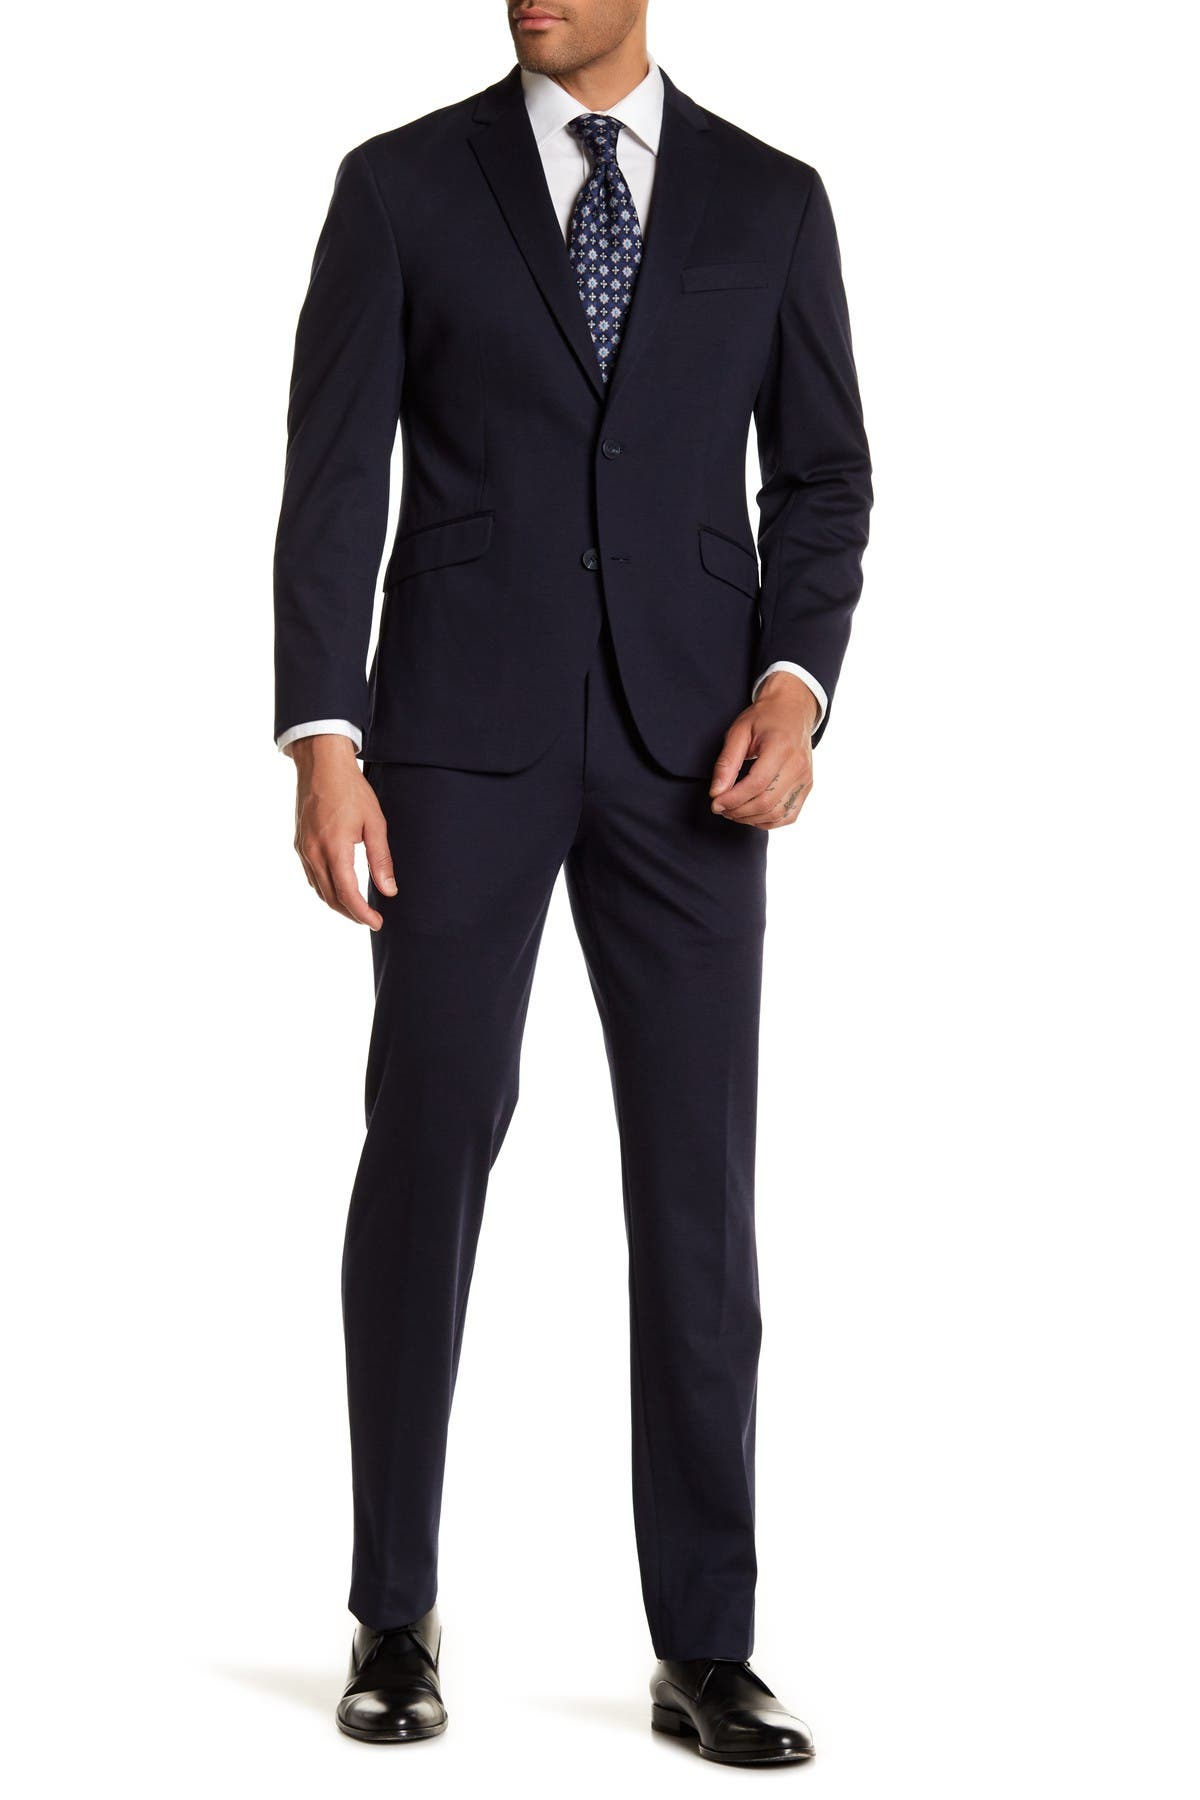 Image of Kenneth Cole Reaction Navy Blue Solid Two Button Notch Lapel Techni-Cole Performance Trim Fit Suit